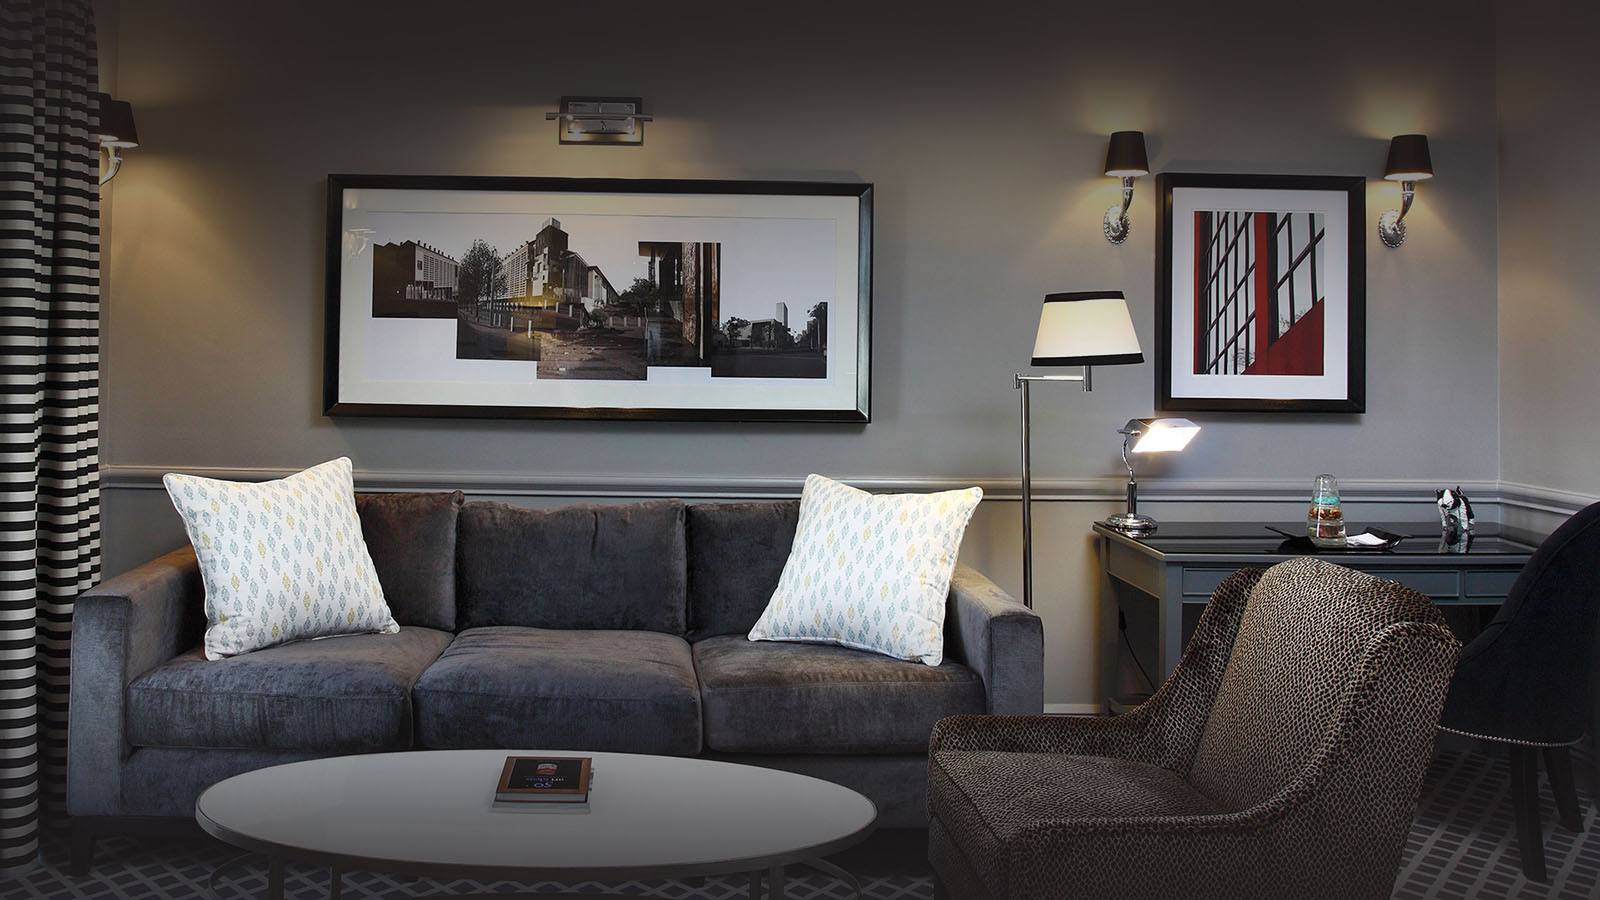 54 on bath johannesburg-lodges-south-africa-luxury-accommodation-zambia-in-style-rosebank-luxurious-comfort-suite